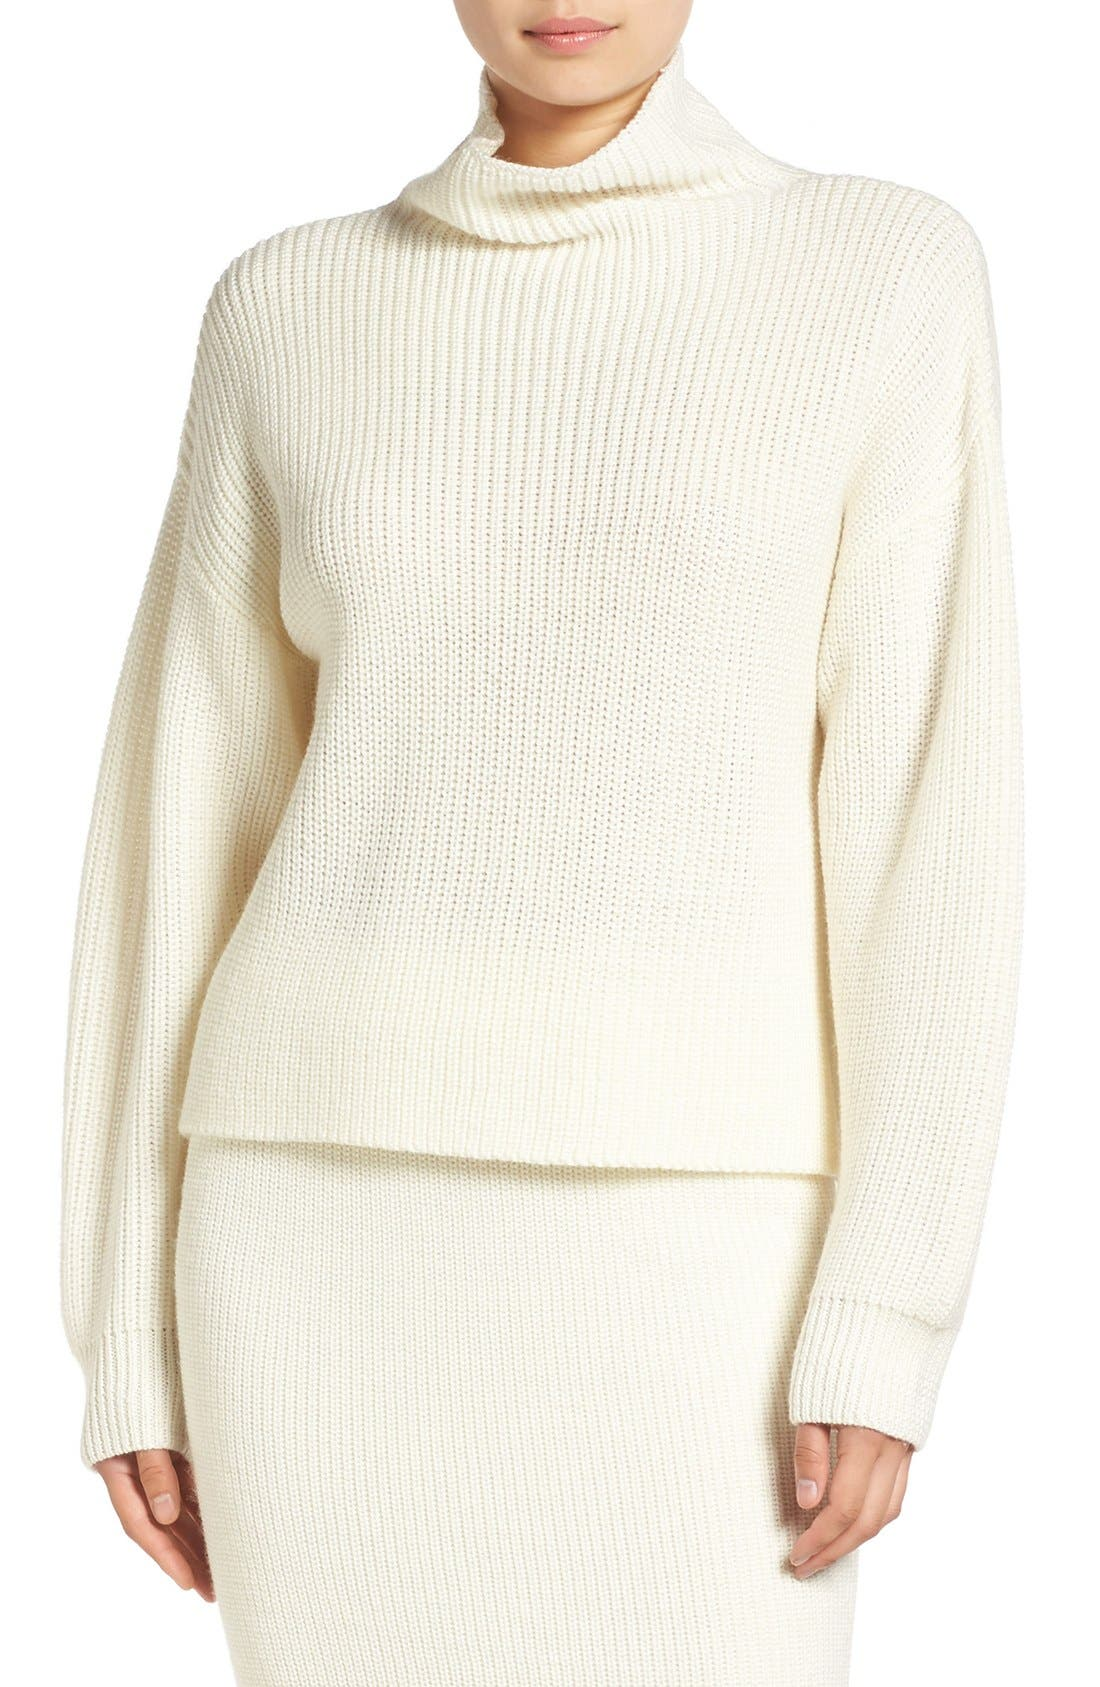 by Lauren Conrad 'Vancouver' Funnel Neck Sweater, Main, color, 100